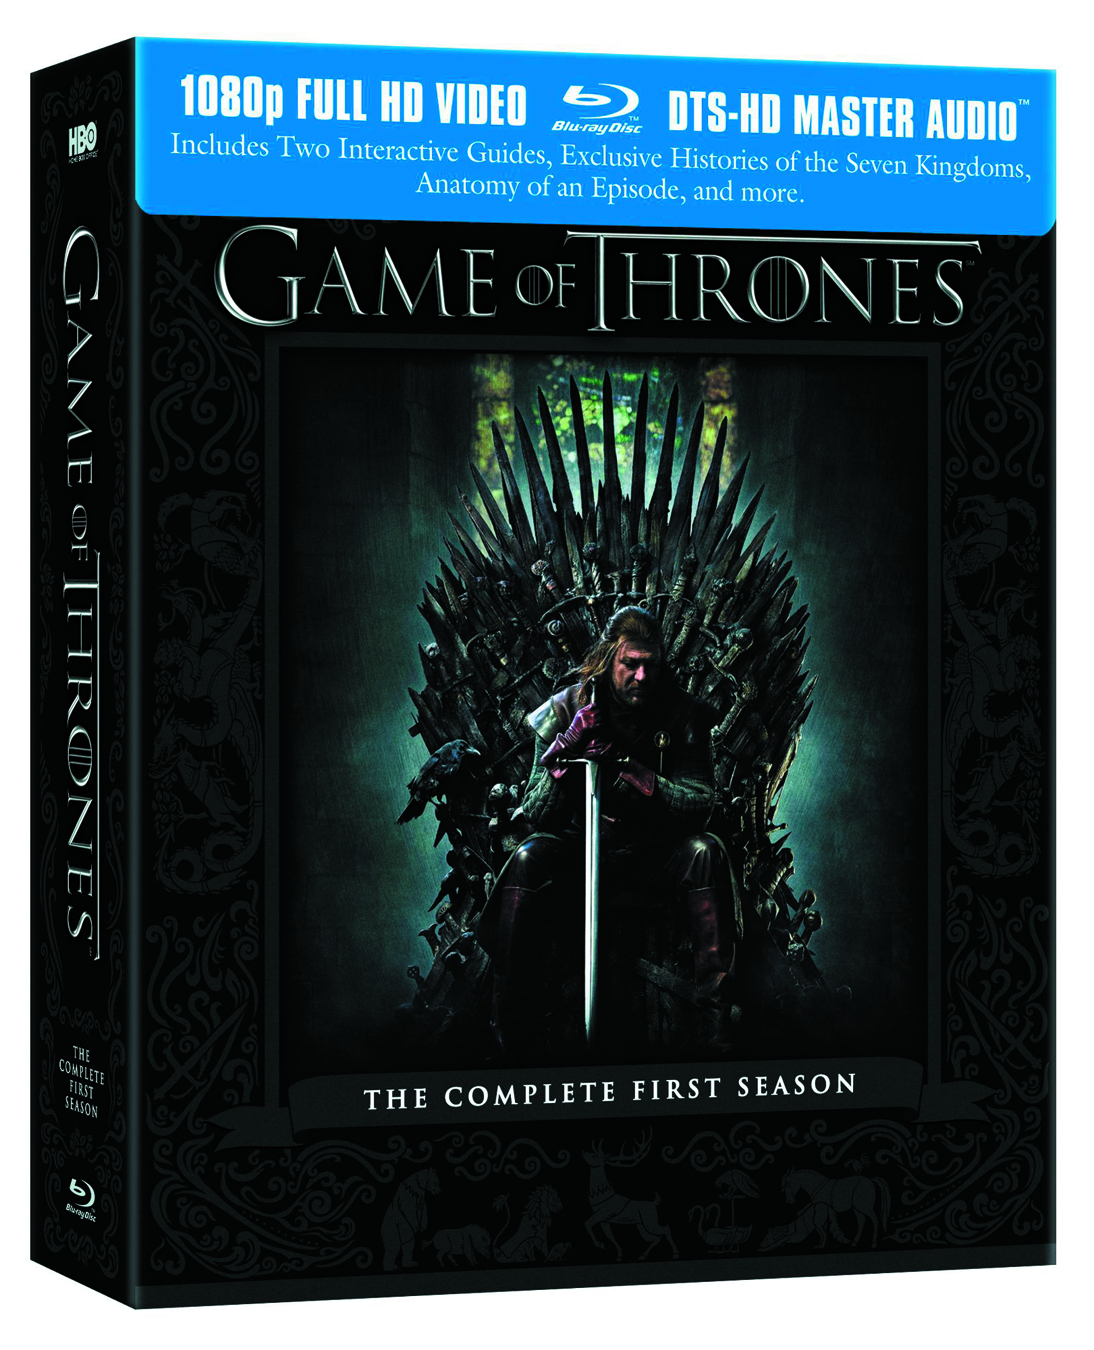 GAME OF THRONES BD SEA 01